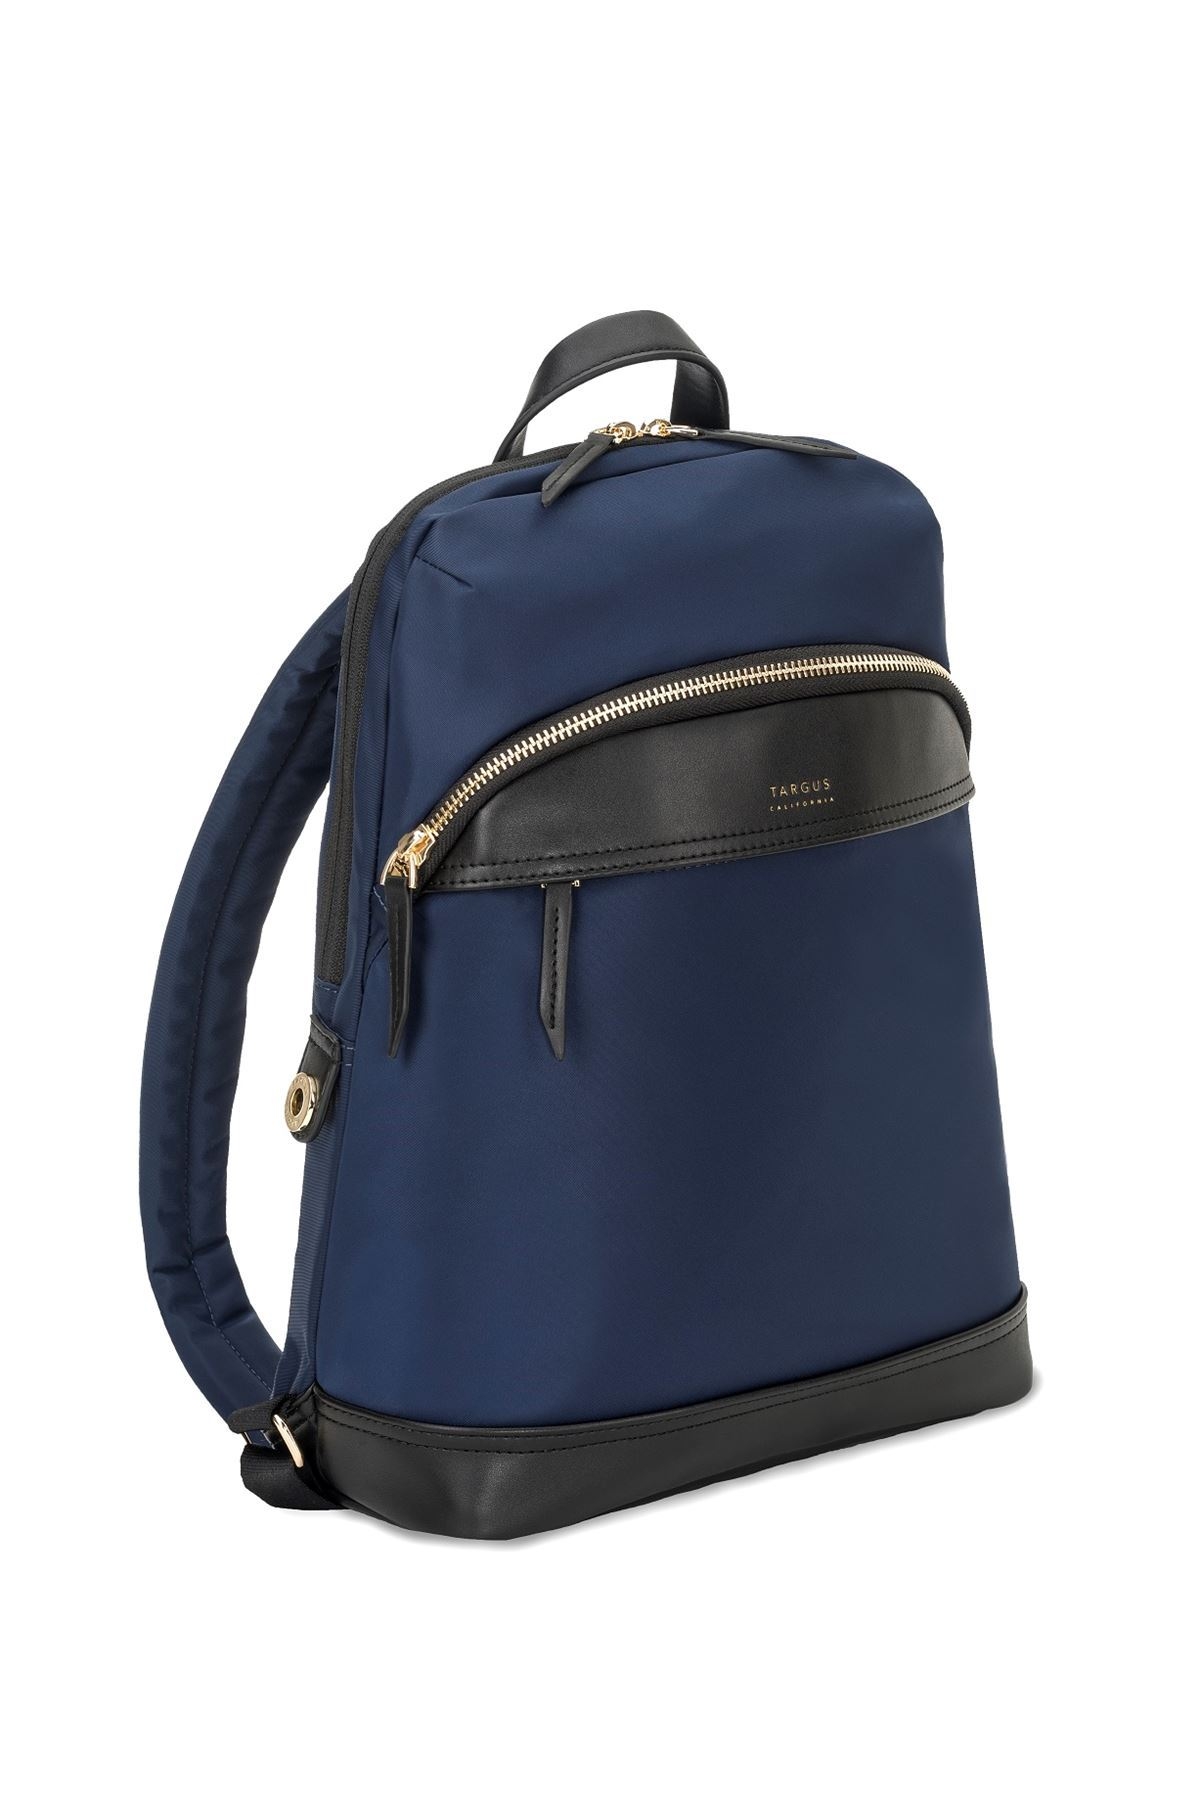 "TARGUS TSB94601, 12"" NEWPORT MINI BACKPACK NAVY"